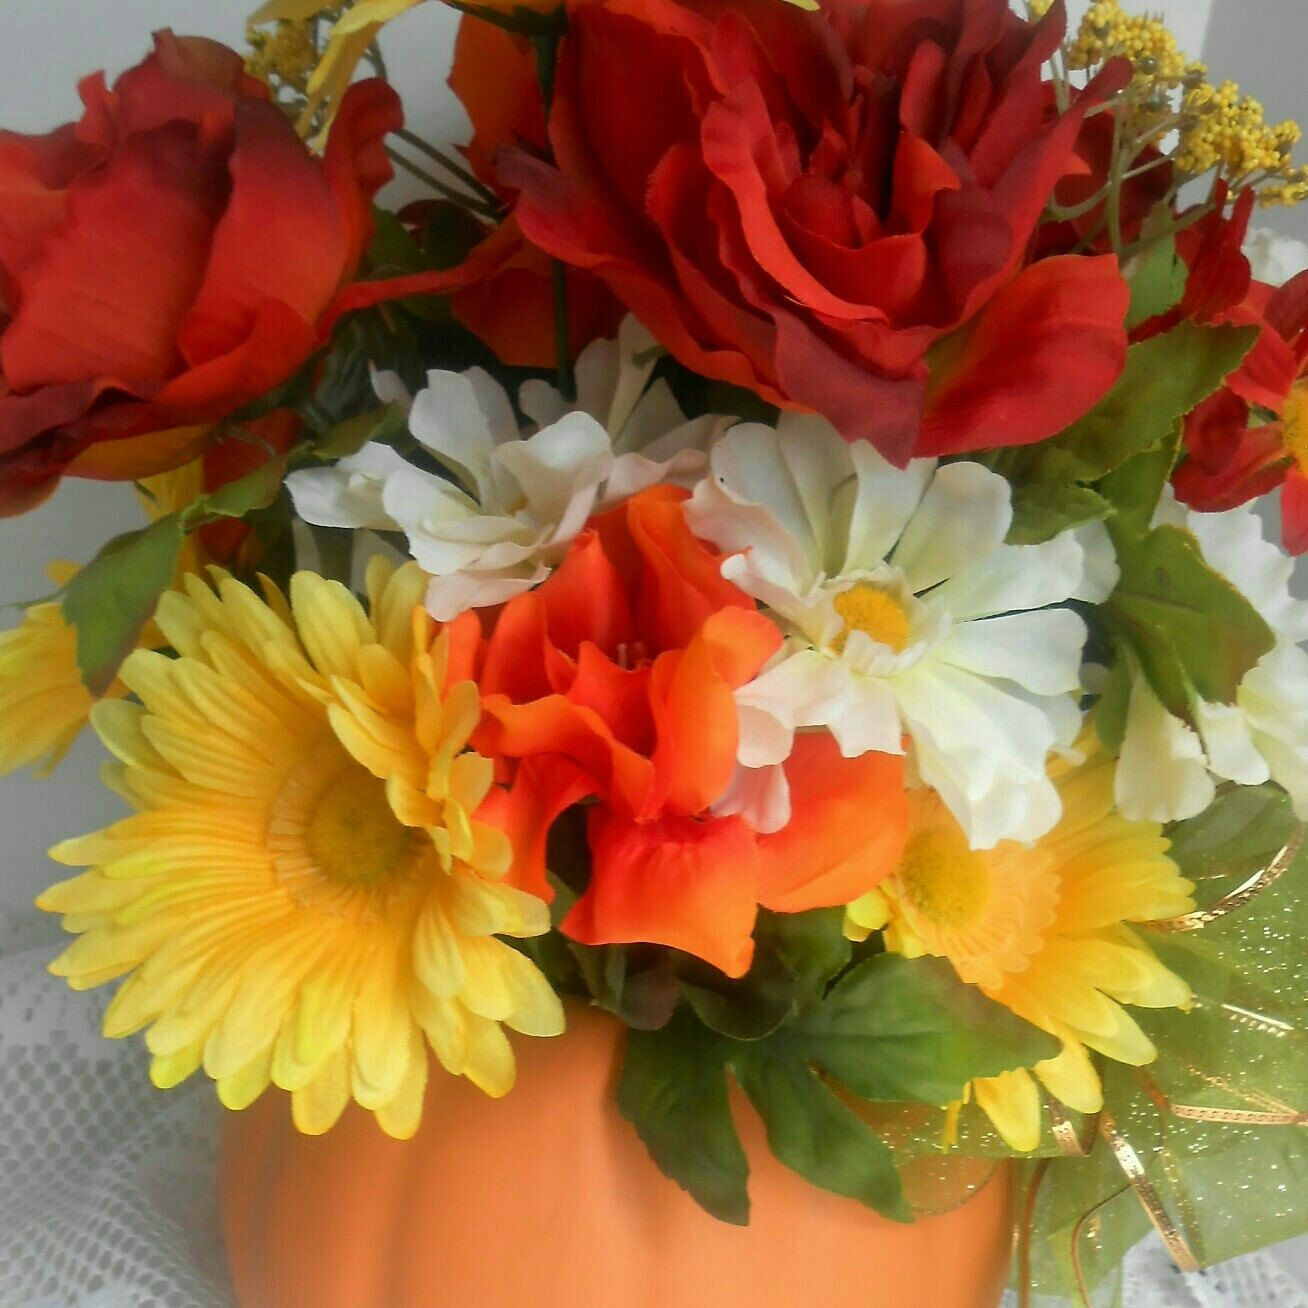 Beautiful fall flower arrangement all set in ceramic crock pumpkin beautiful fall flower arrangement all set in ceramic crock pumpkin stop by reverencebykarinsy izmirmasajfo Image collections